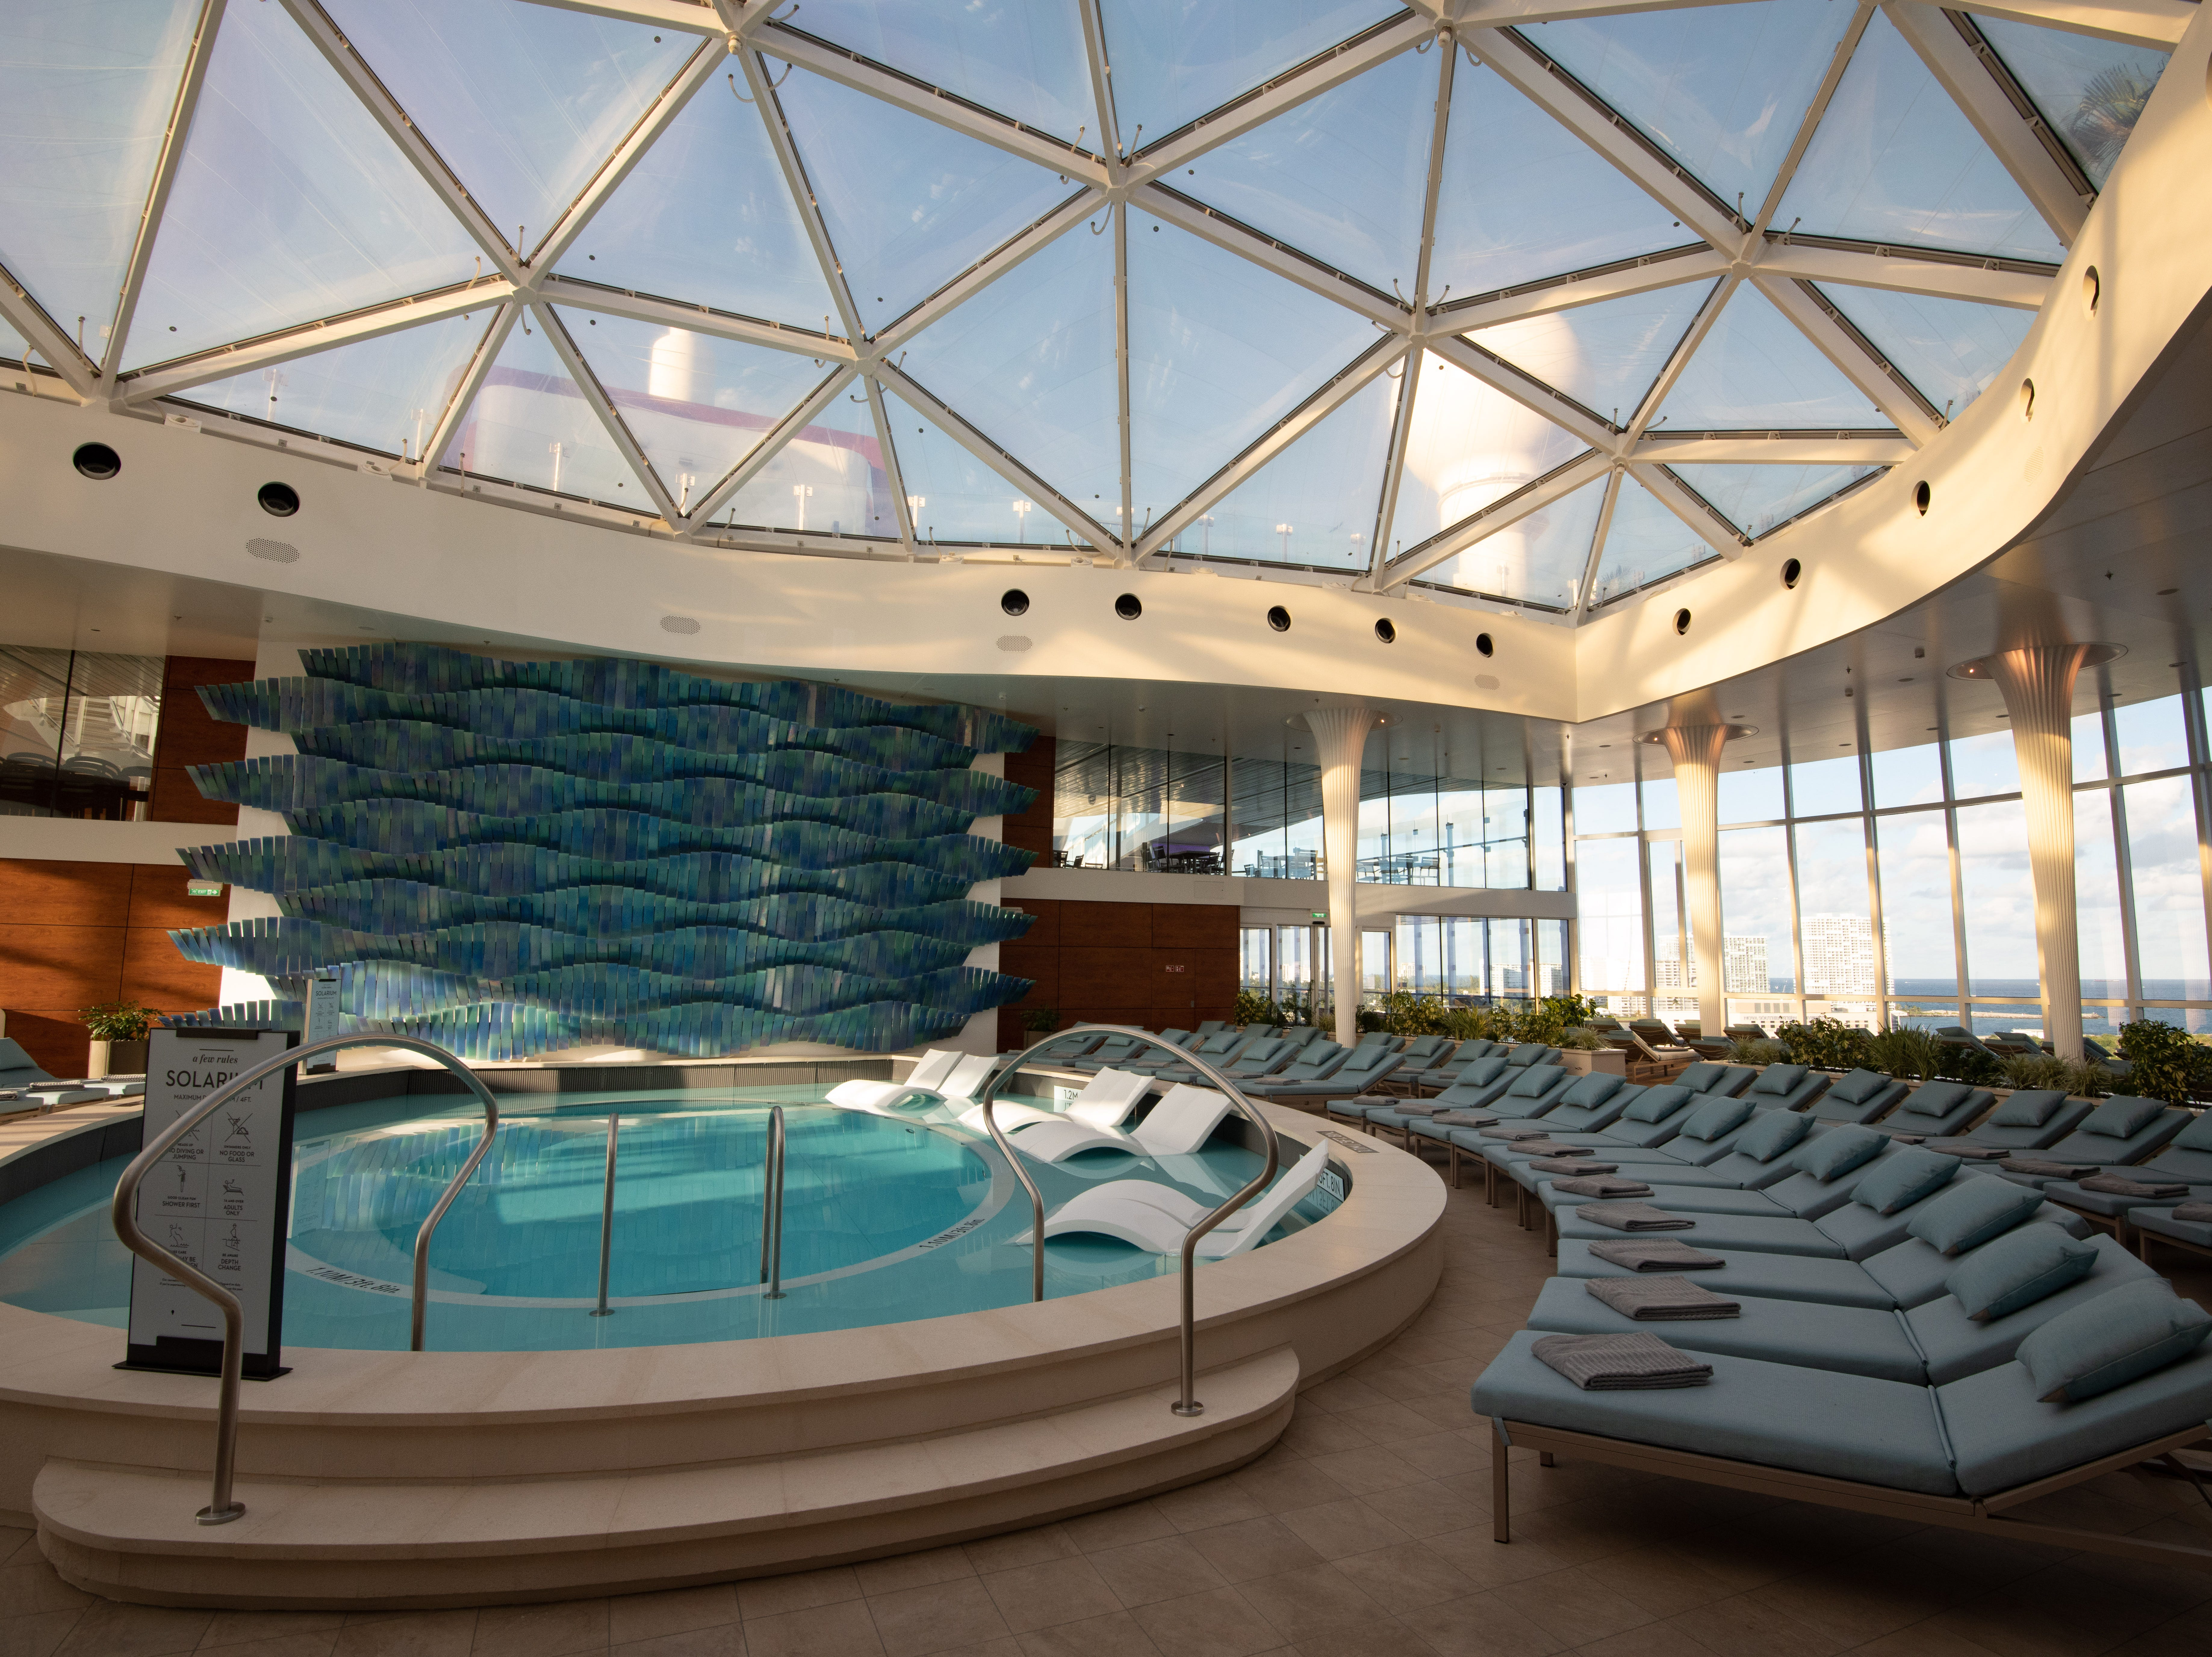 Like other Celebrity ships, Celebrity Edge is home to a covered, adults-only Solarium. The Solariuum on Edge was designed in collaboration with renowned British architect Tom Wright.